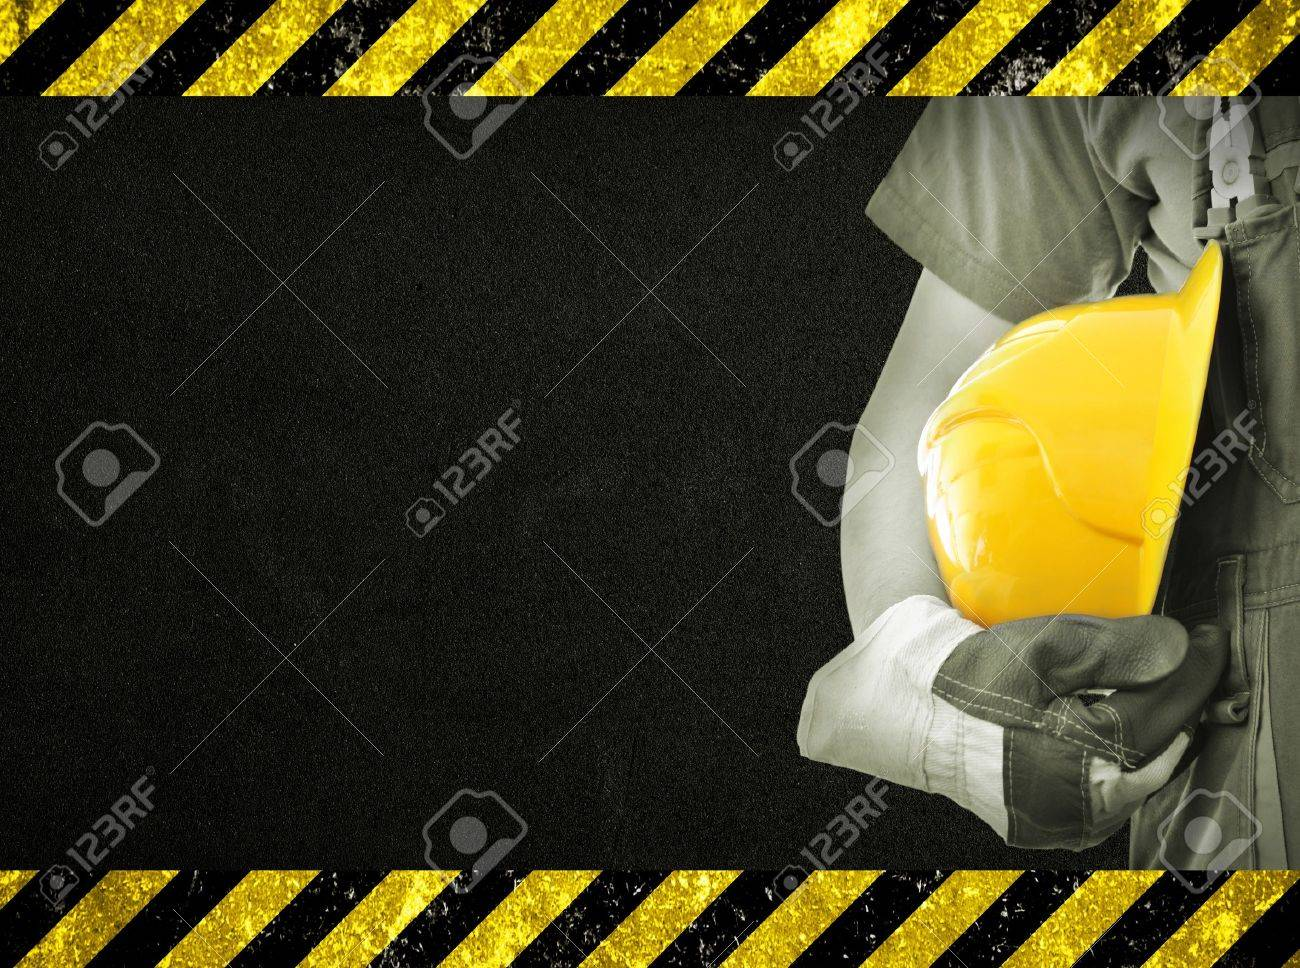 Worker and dark texture in background Concept of OSH occupational safety and health - 18211305